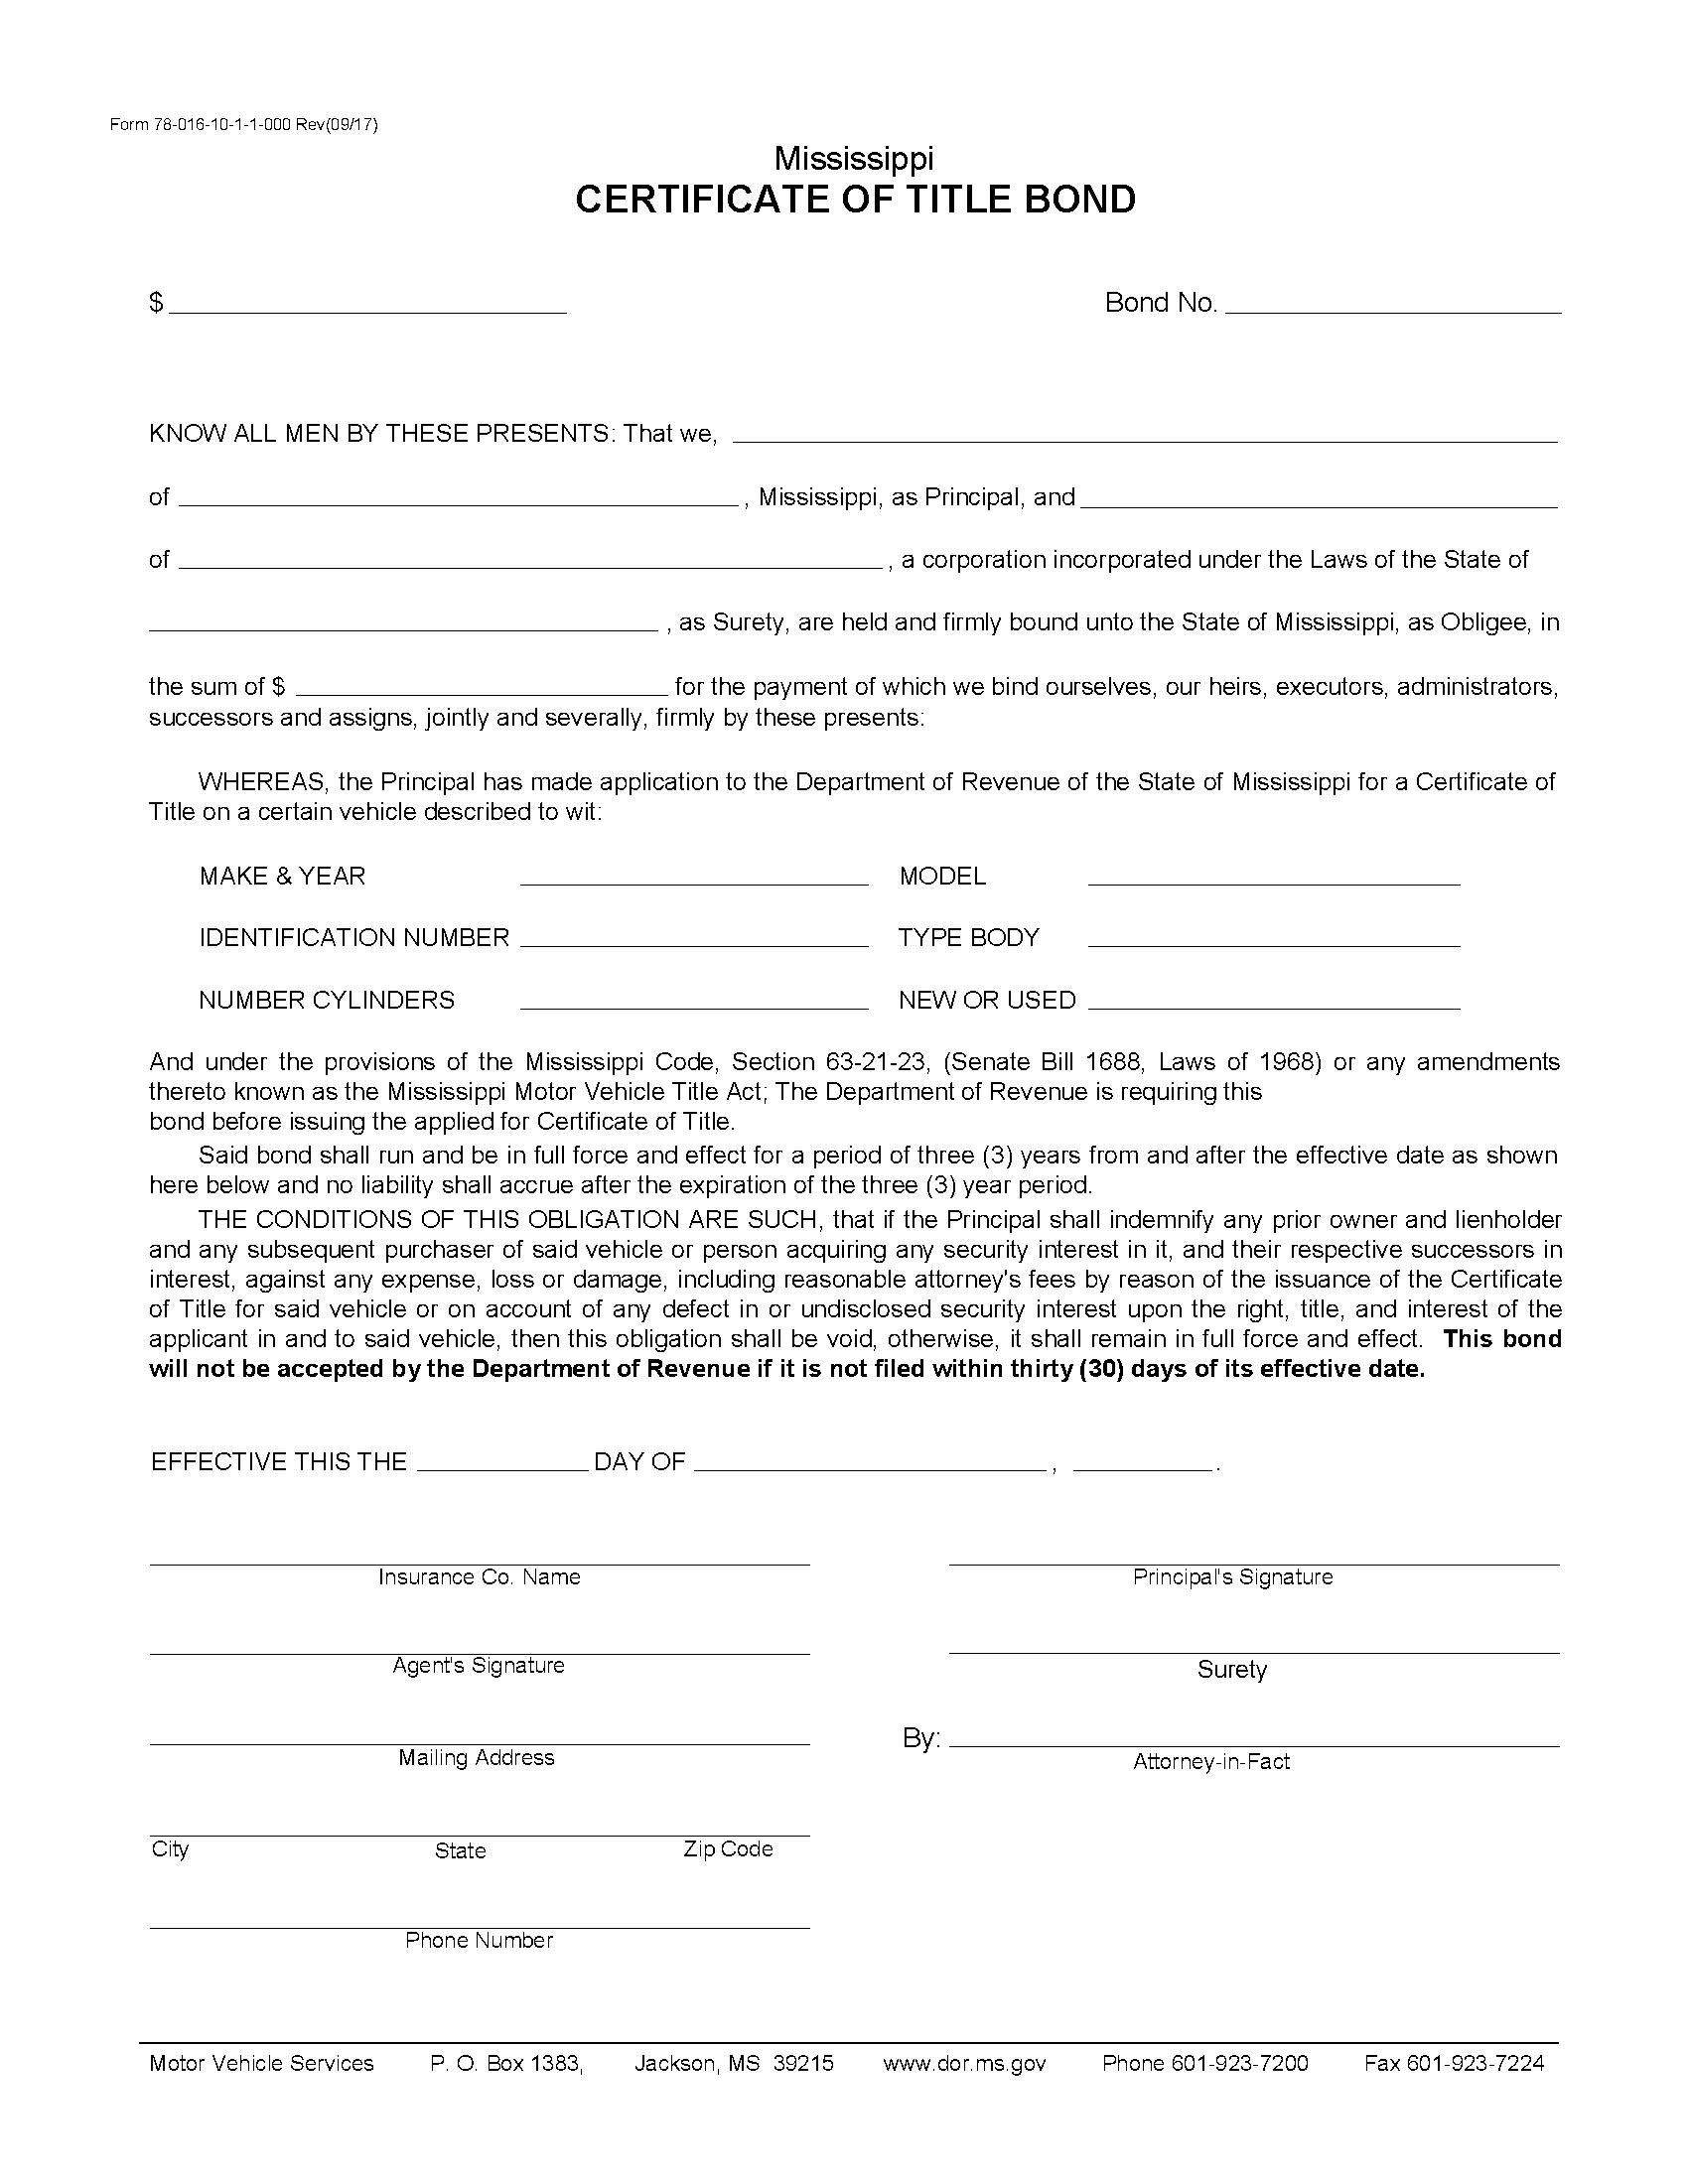 State of Mississippi Motor Vehicle Certificate of Title Bond sample image